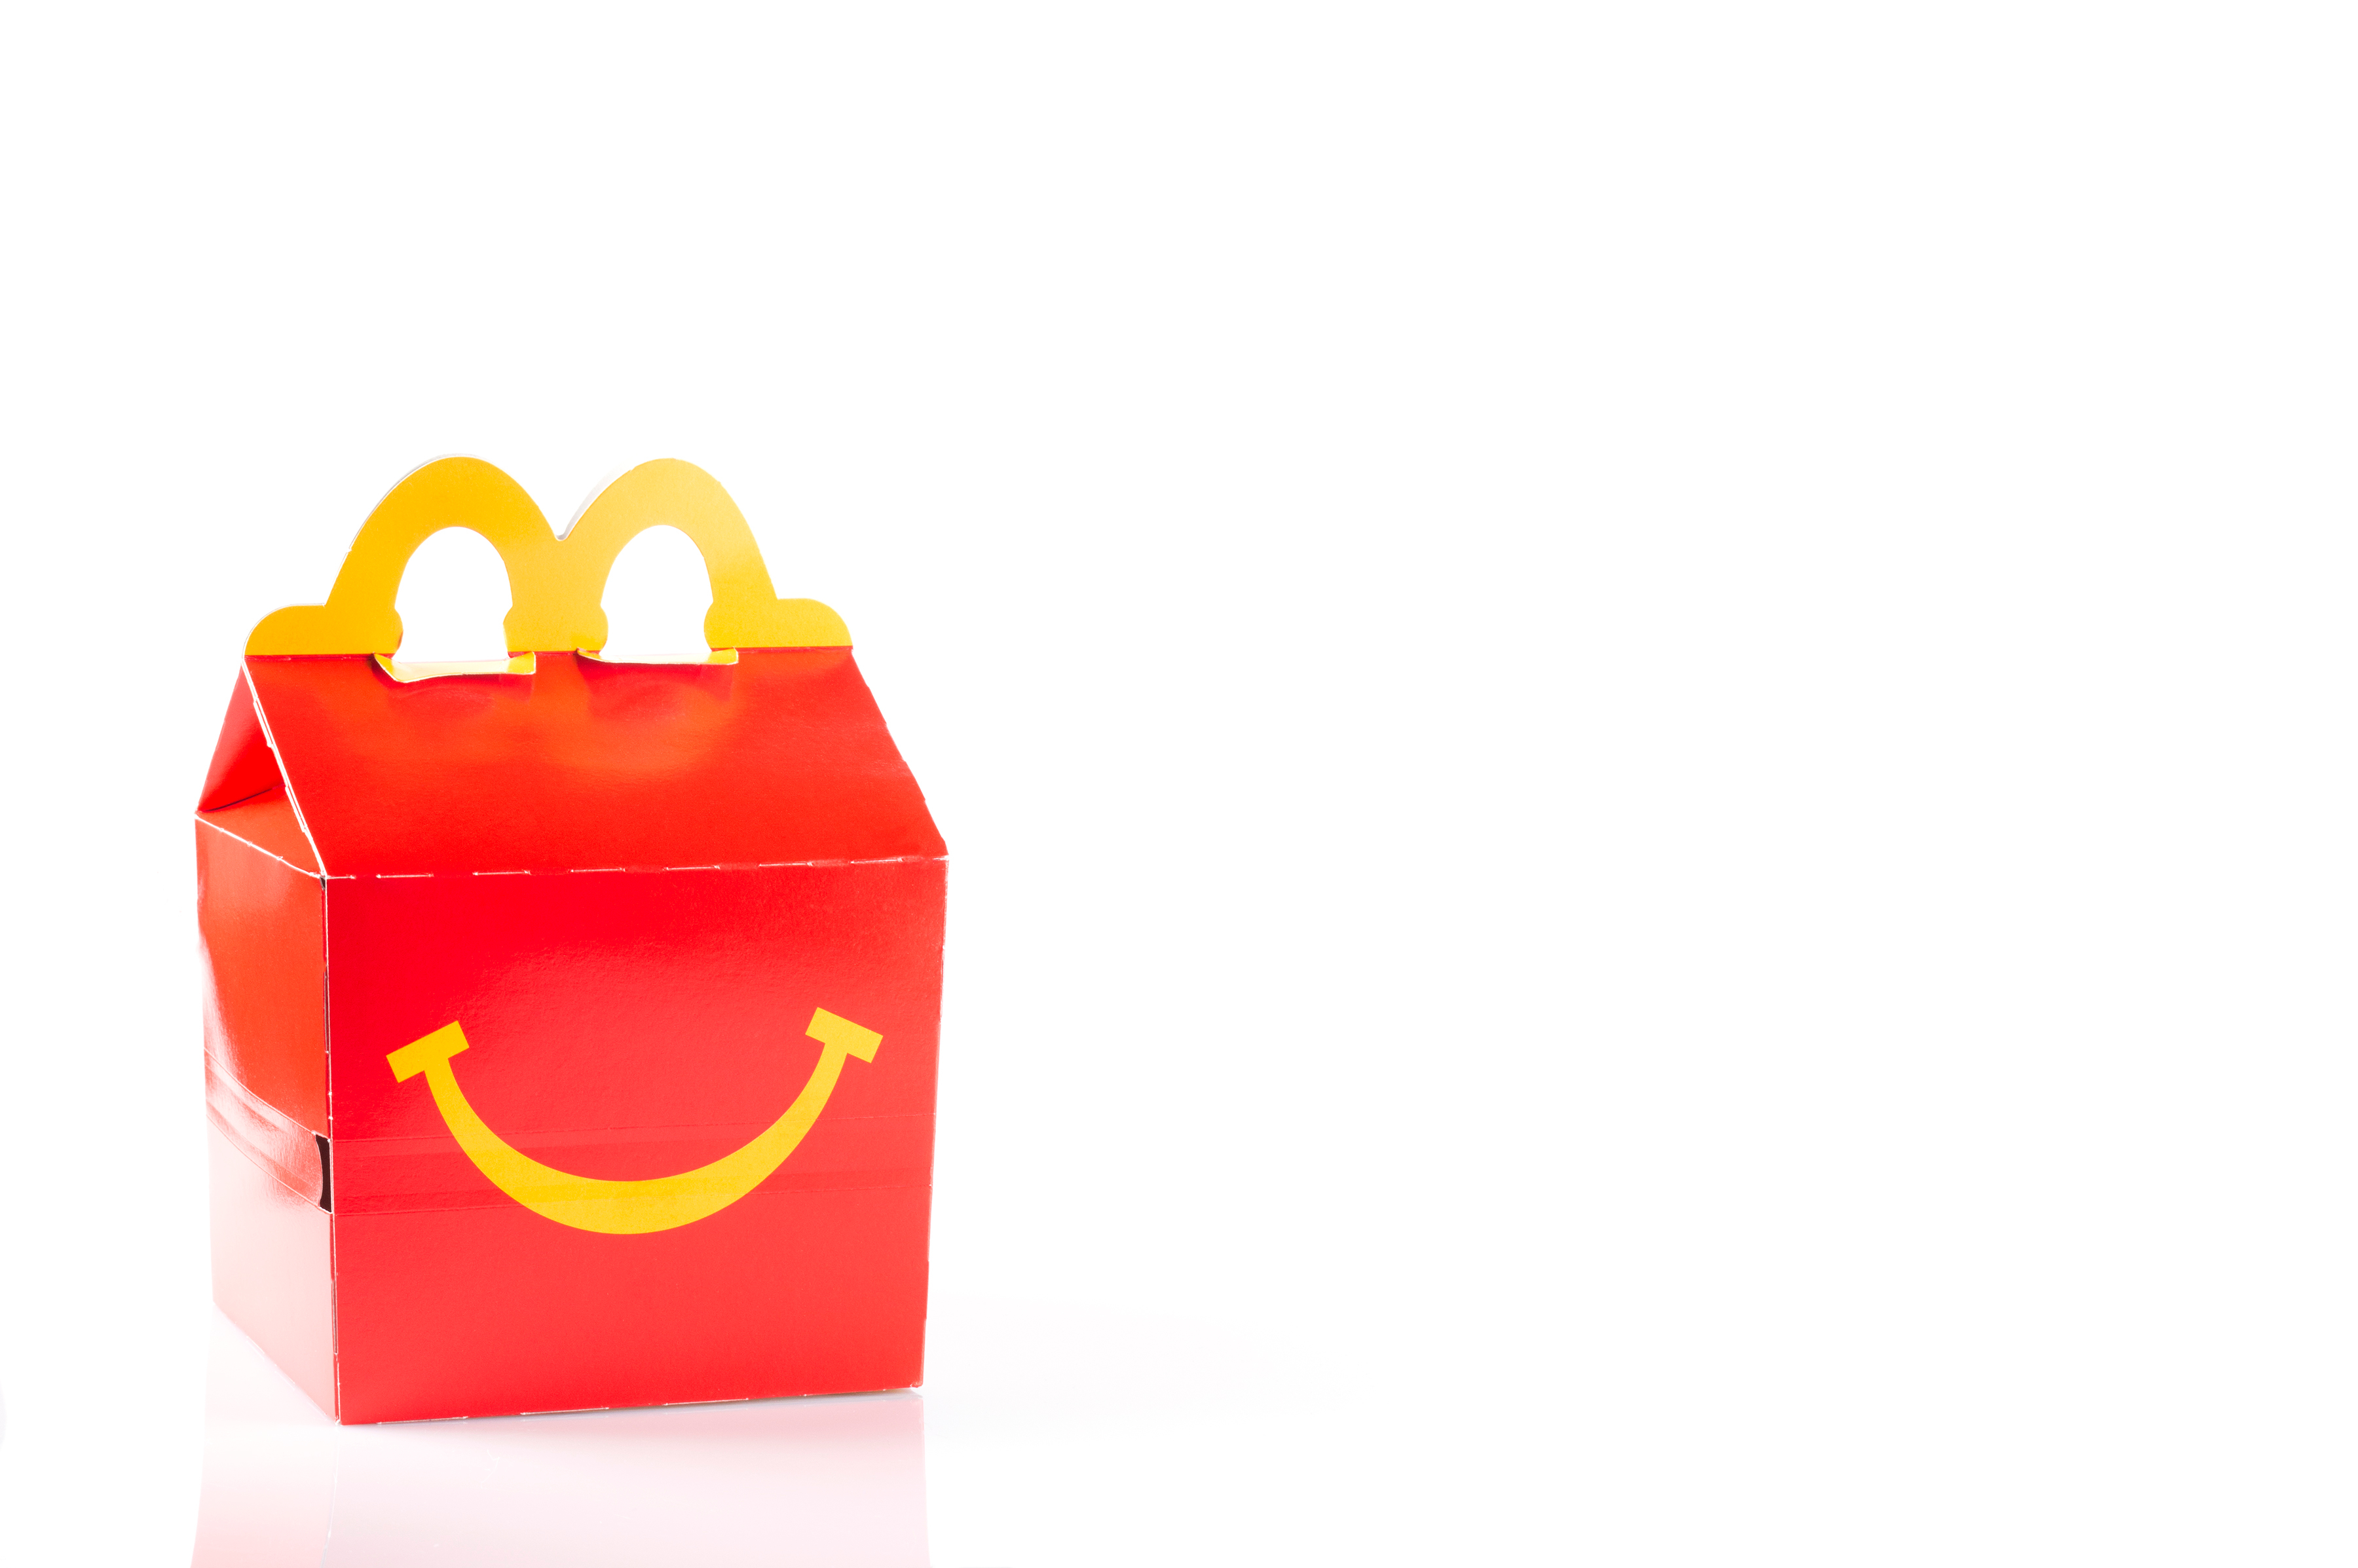 A red McDonald's Happy Meal box framed against an all-white background.